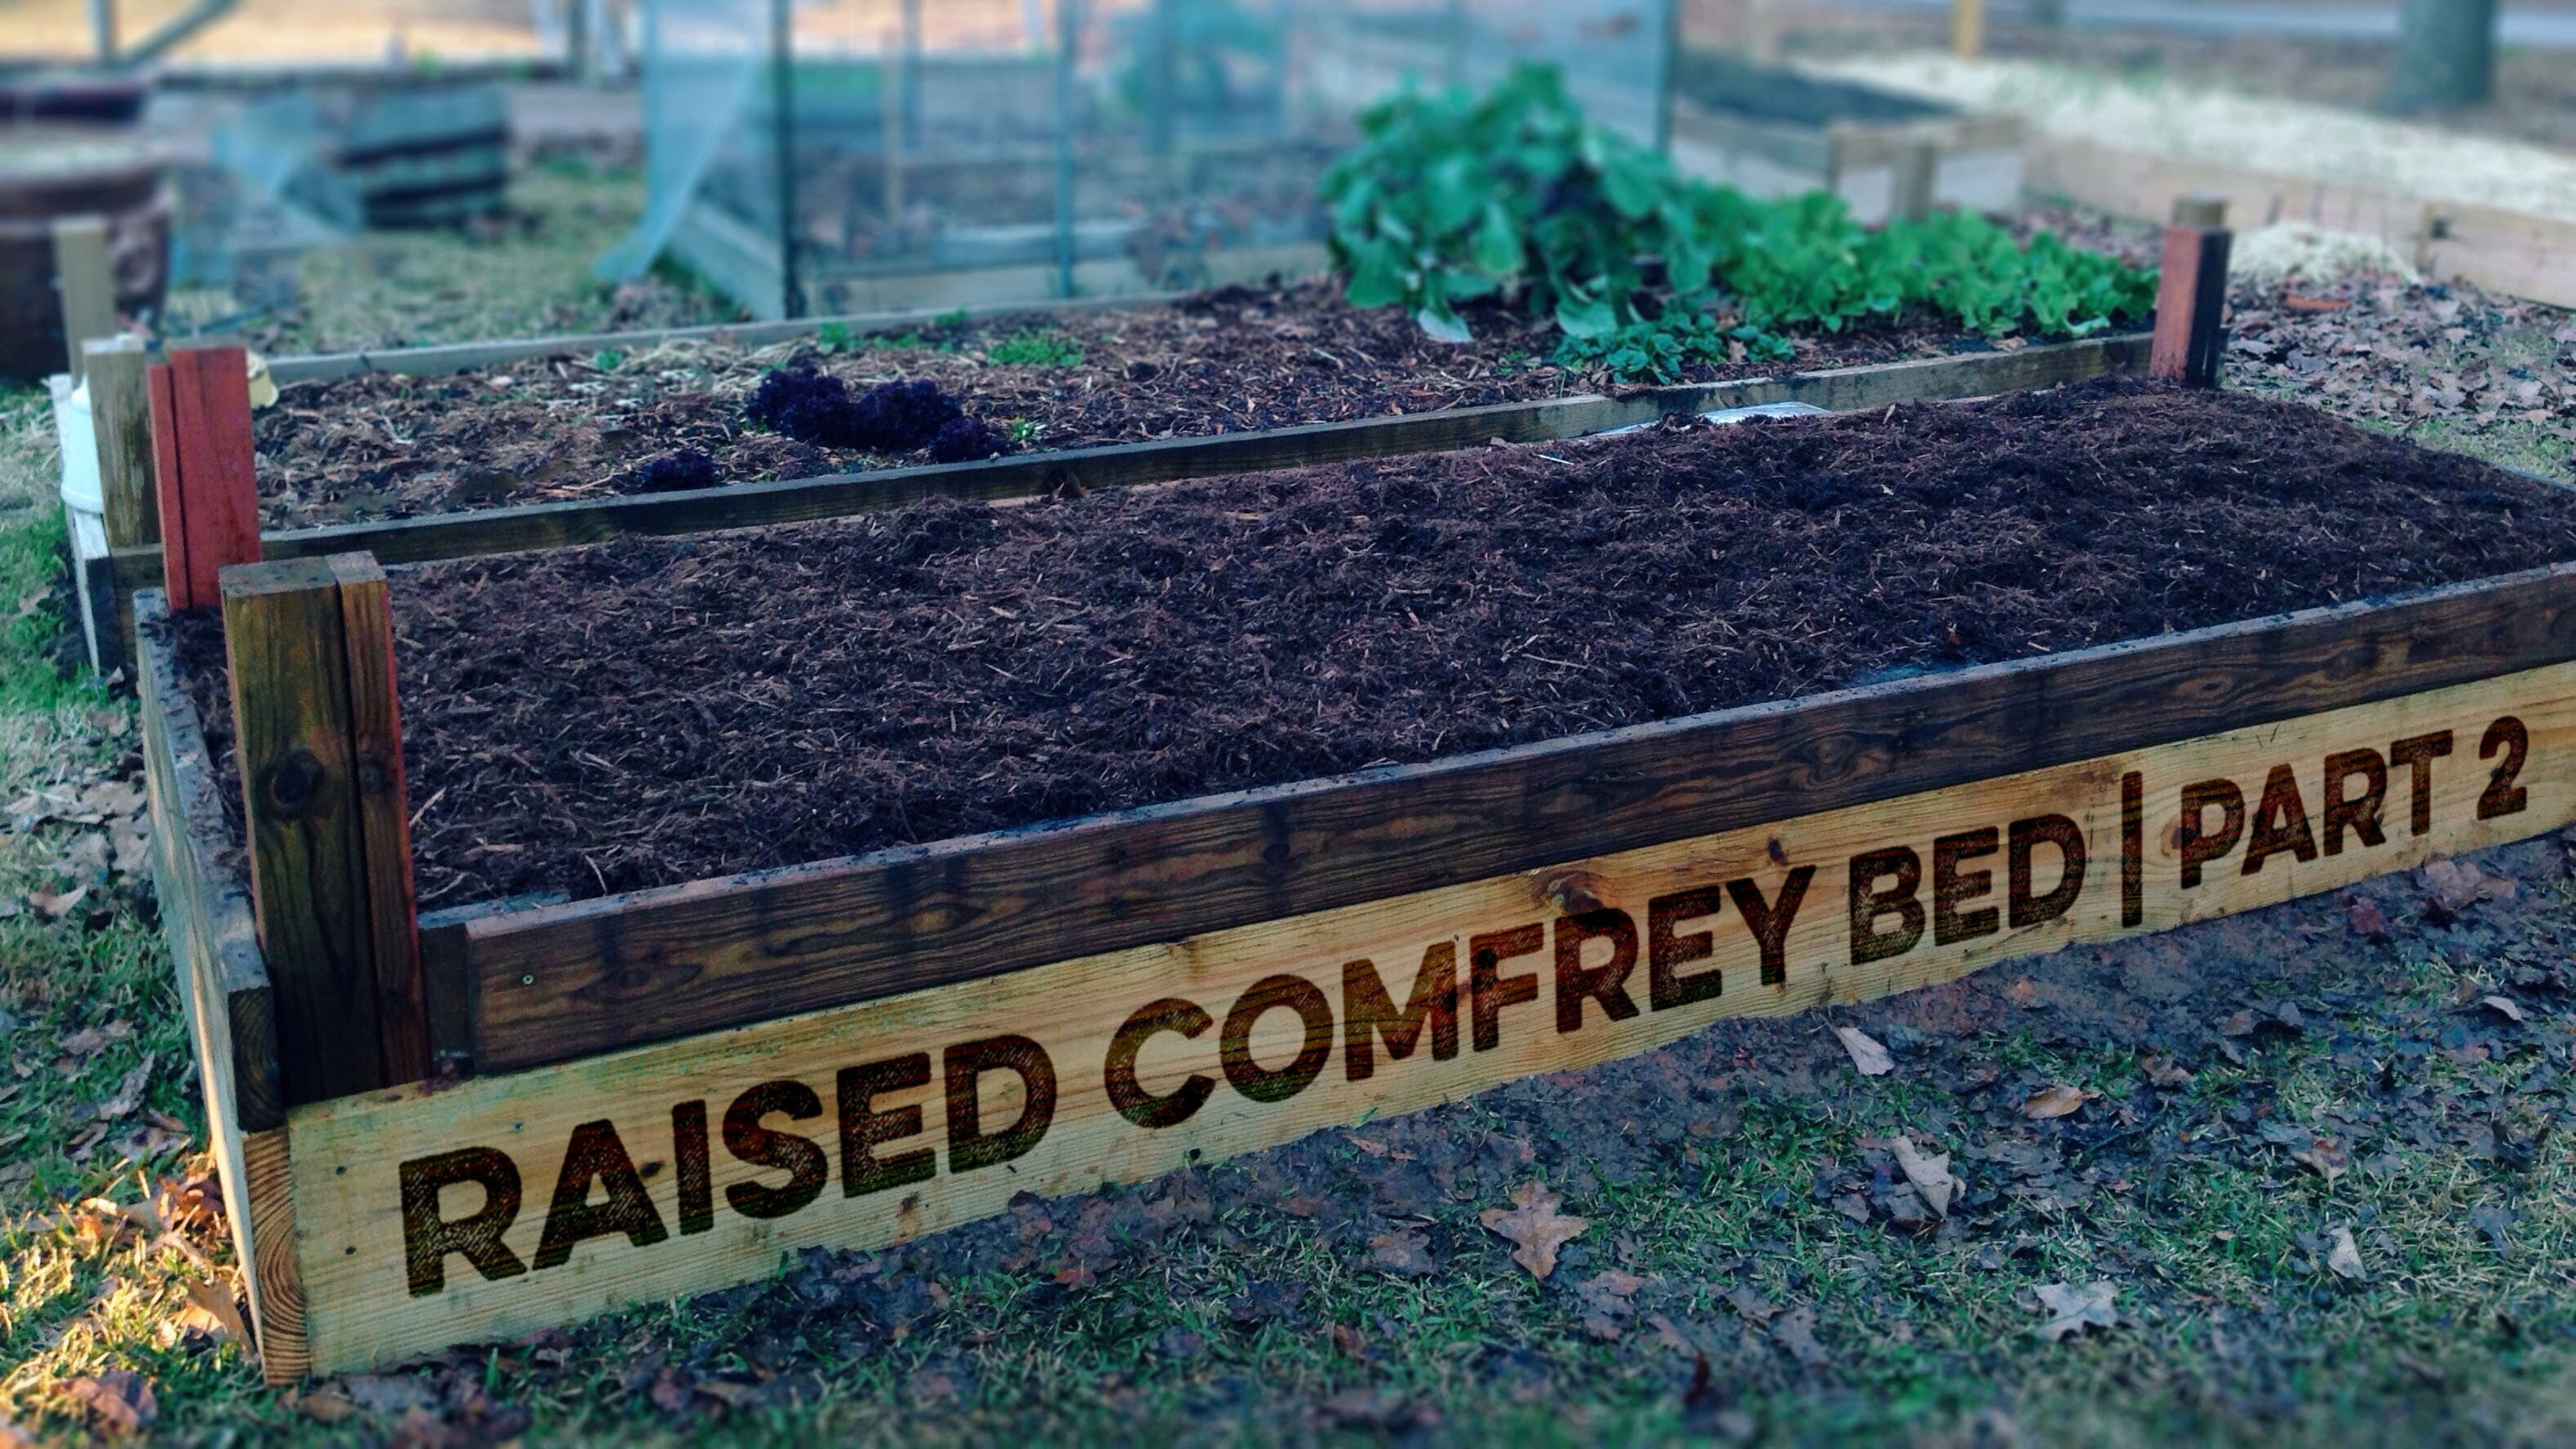 Raised Comfrey Bed Part 2 Hero Image